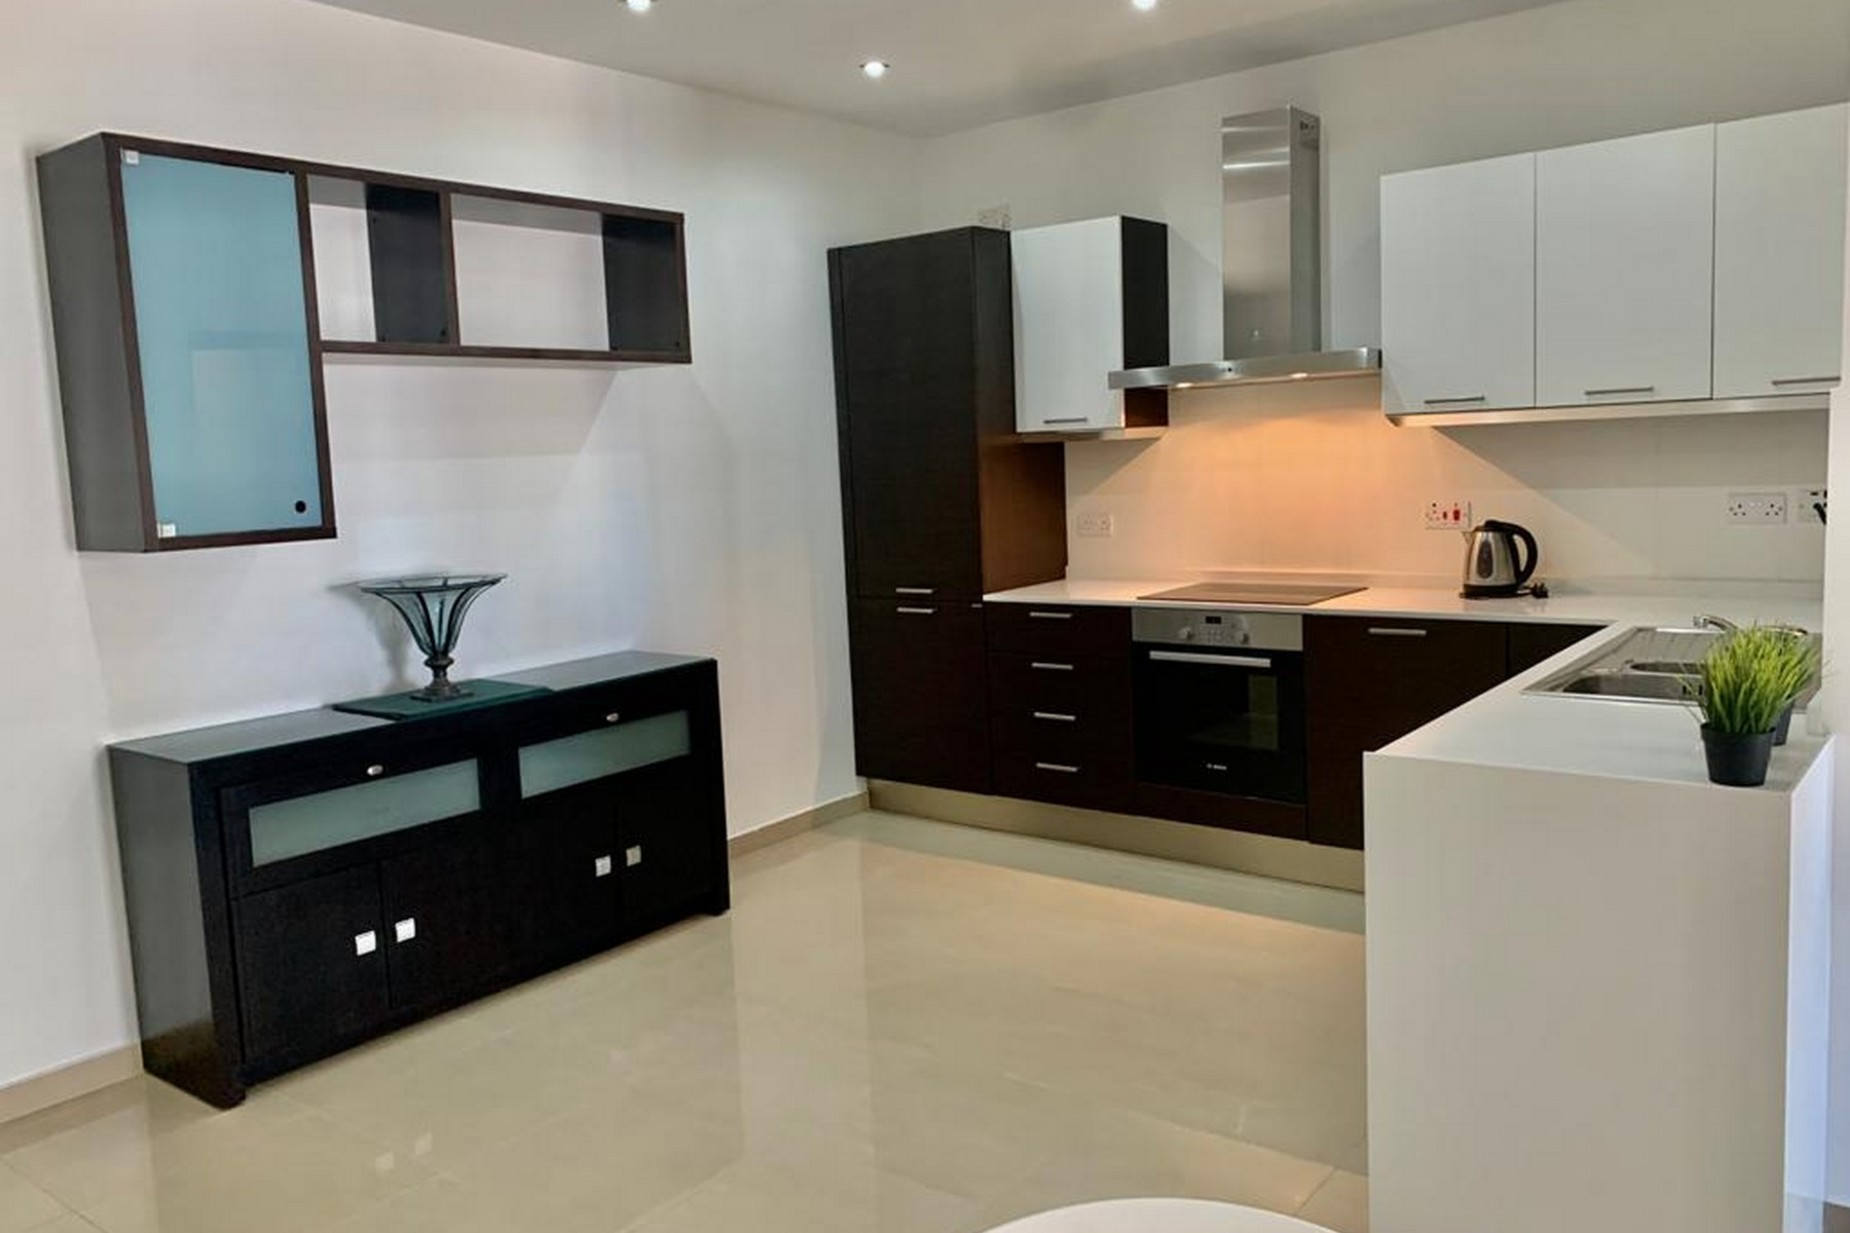 3 bed Apartment For Rent in Ibragg, Ibragg - thumb 15